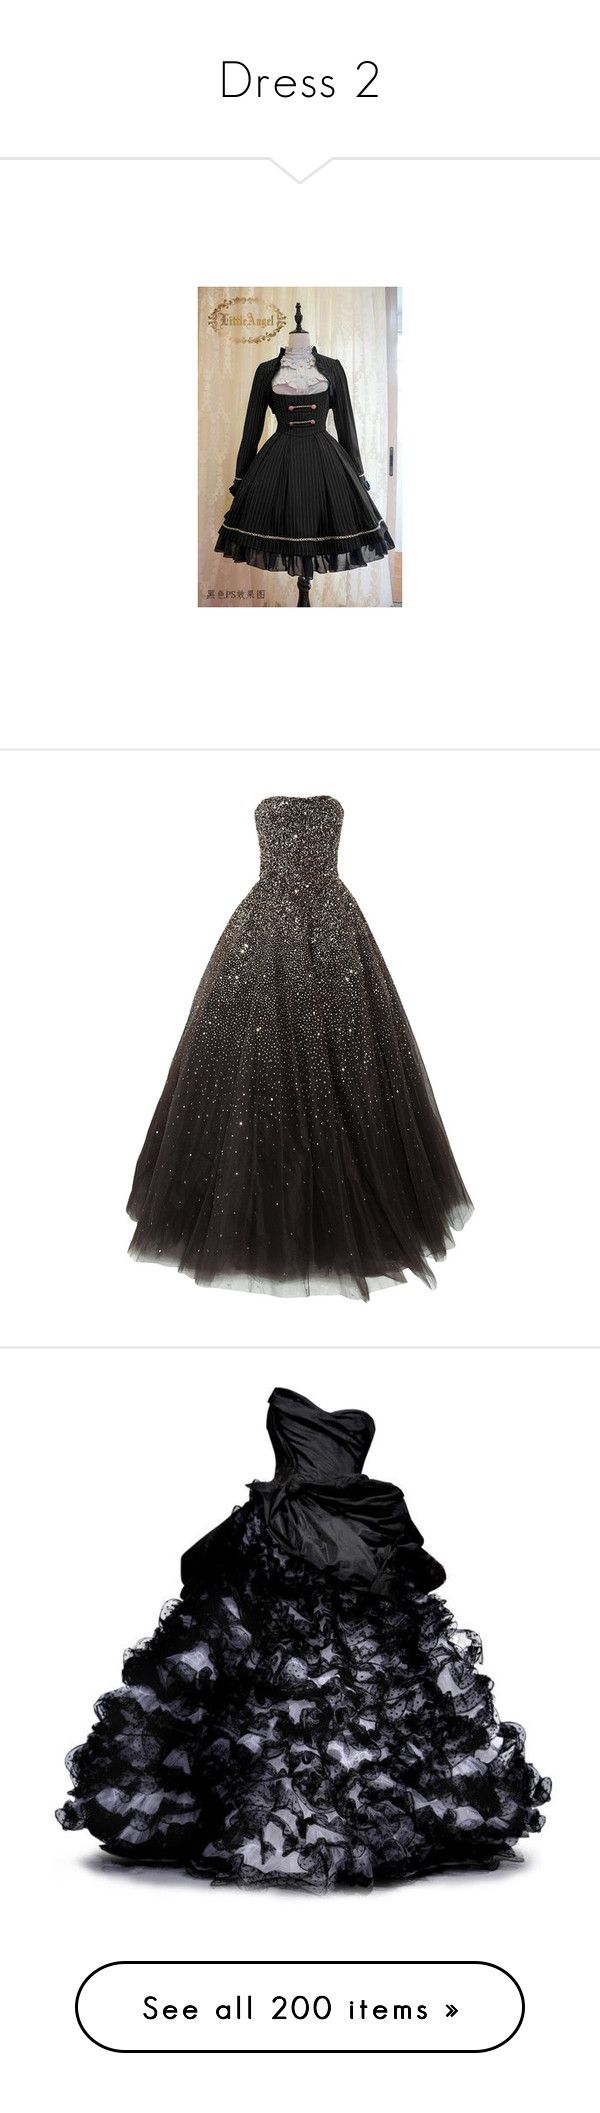 """Dress 2"" by fantasy2fiction ❤ liked on Polyvore featuring dresses, gowns, vestidos, long dresses, sequin embellished dress, sequin dresses, sequin evening gowns, sequin evening dresses, long dress and purple ball gowns"